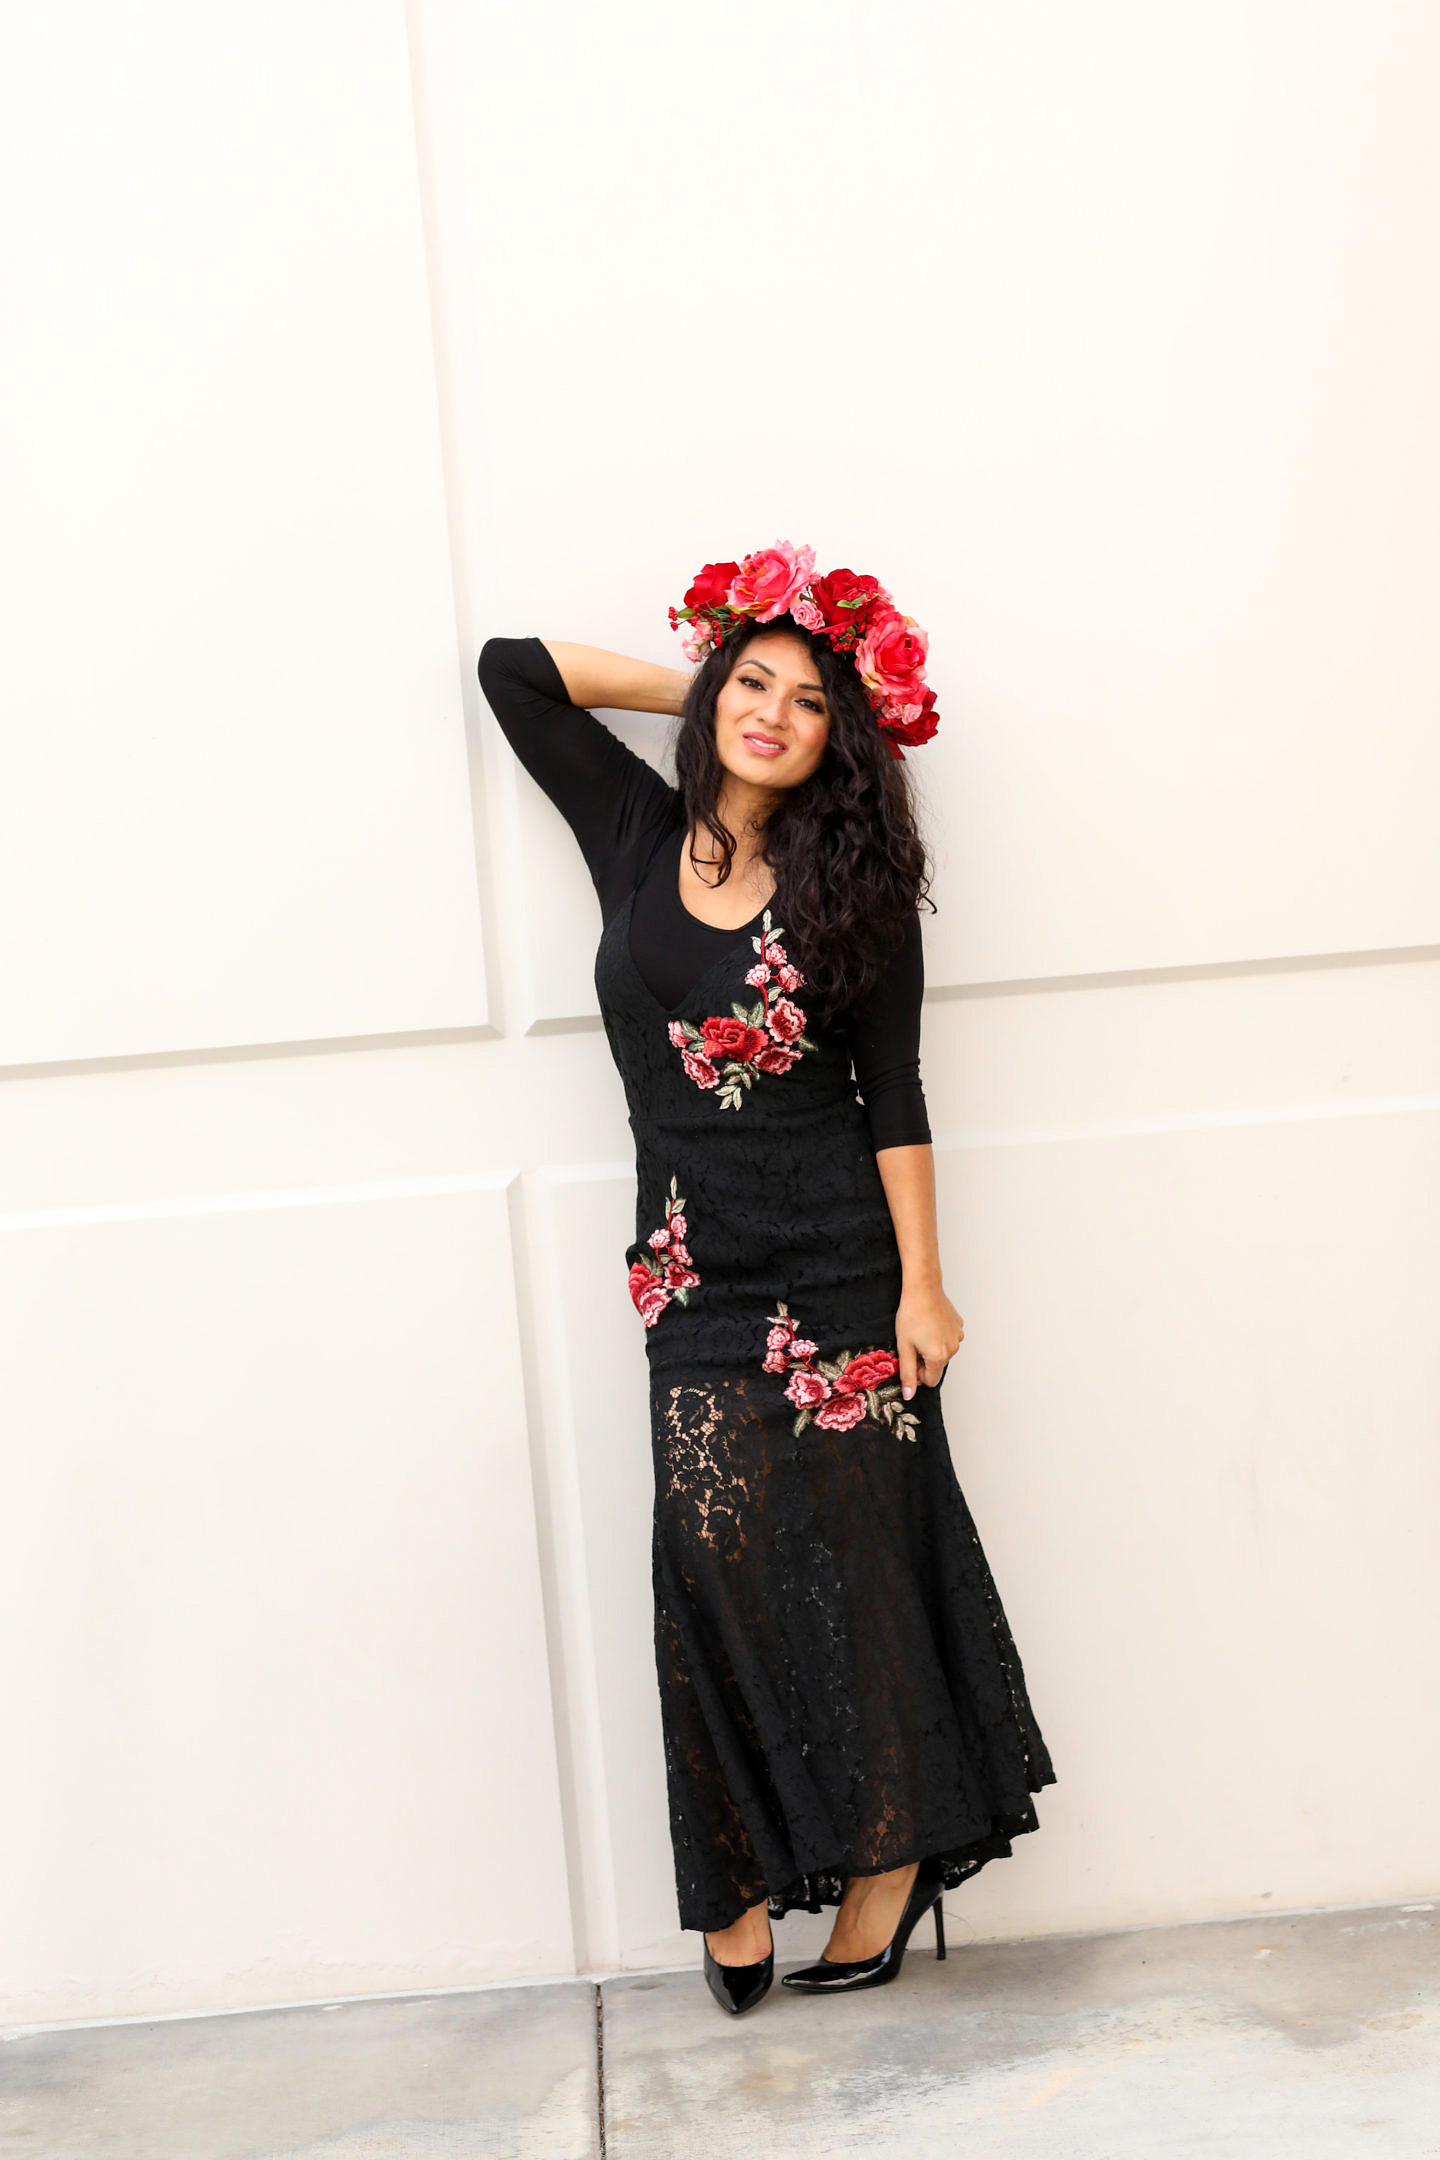 Curious how to wear a Flamenco Dance Dress? Orange County Blogger Debbie Savage is sharing her favorite way to style a Flamenco Dance Dress here!